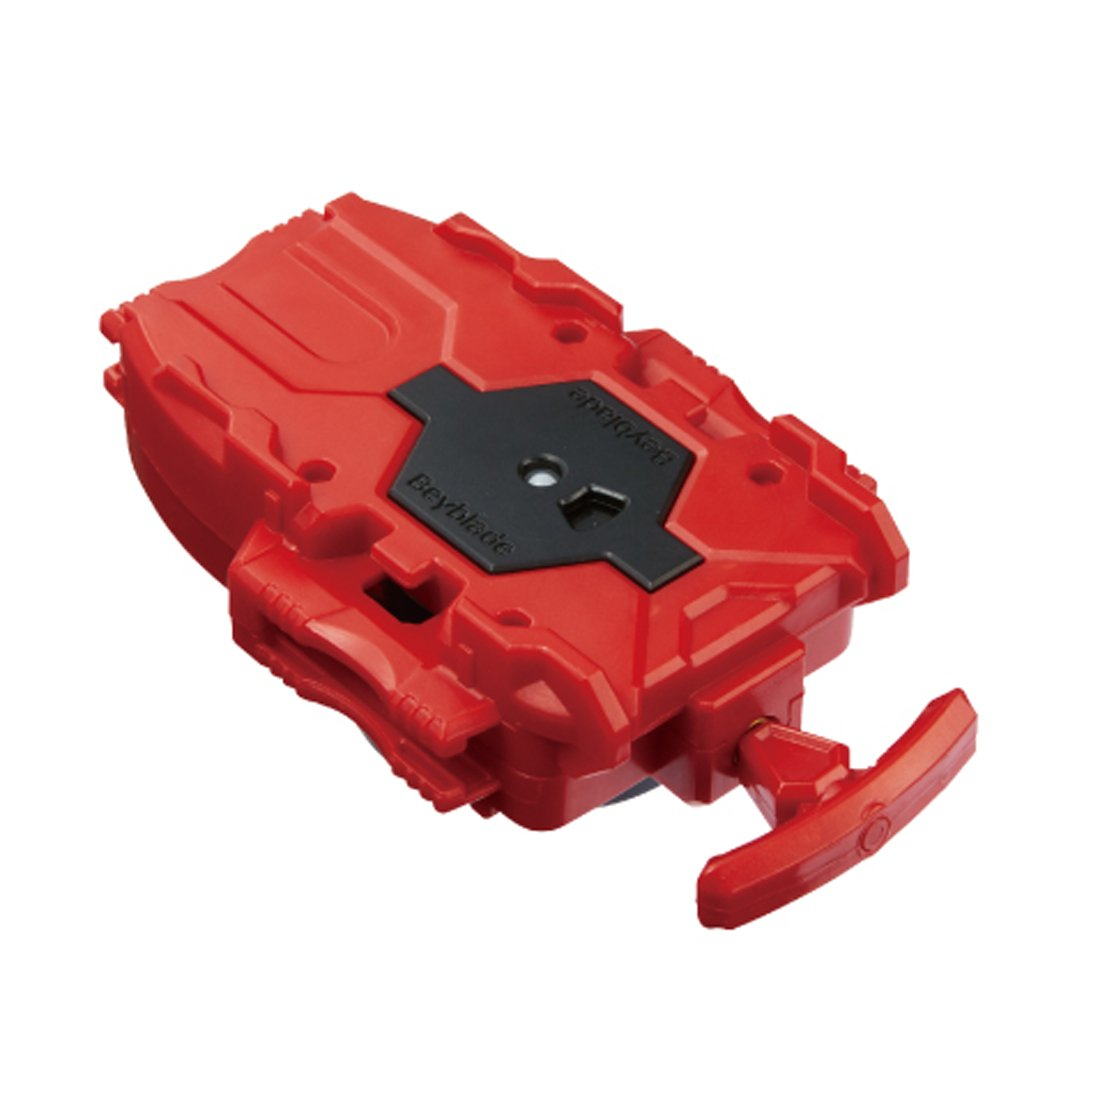 Takara Tomy B-108 Takaratomy Beyblade Burststring Beylauncher Red Color Right Spin Top by Takara Tomy